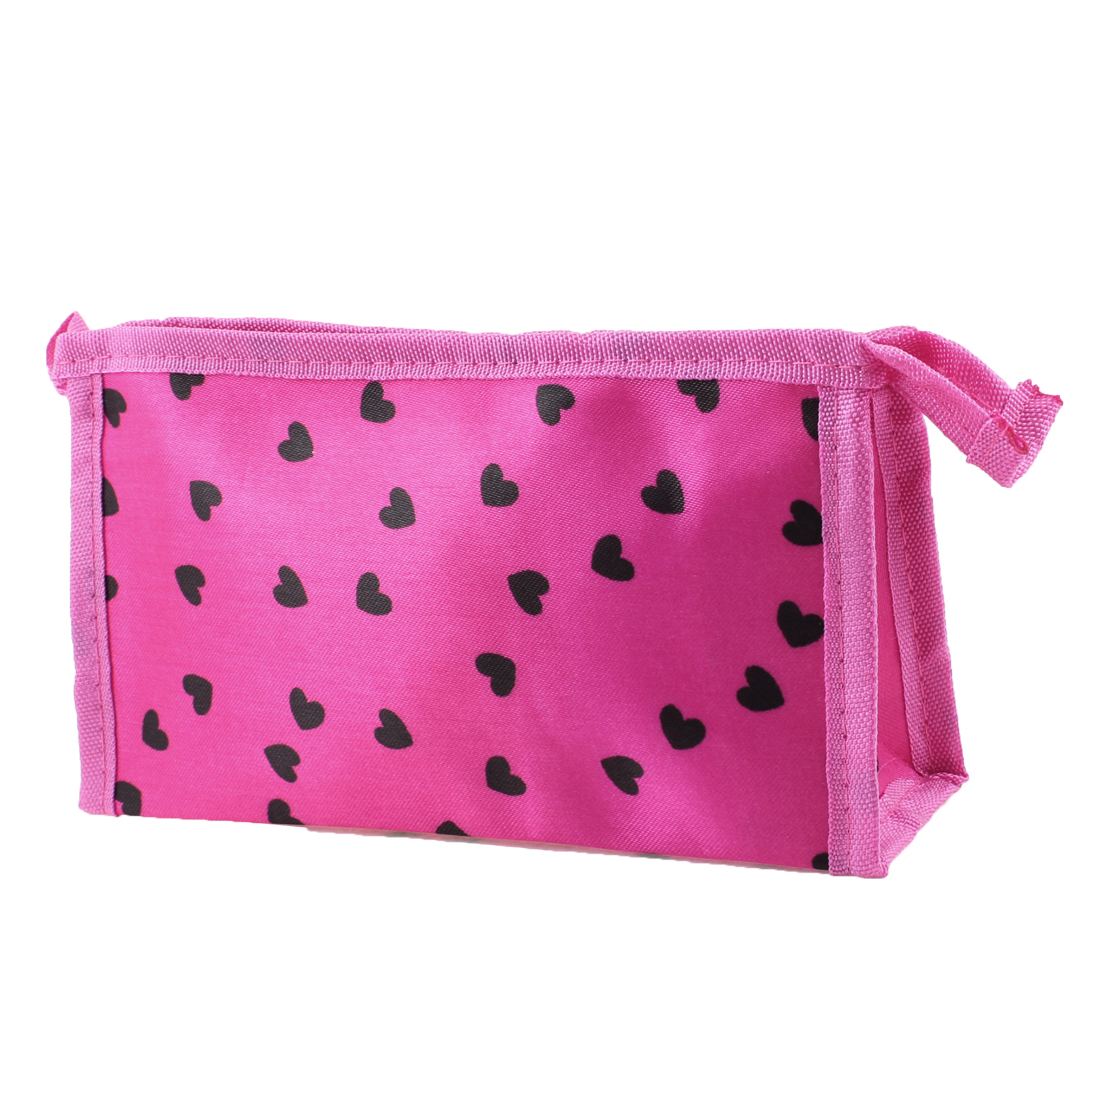 One Compartment Zip Up Black Heart Printed Fuchsia Cosmetic Bag for Lady